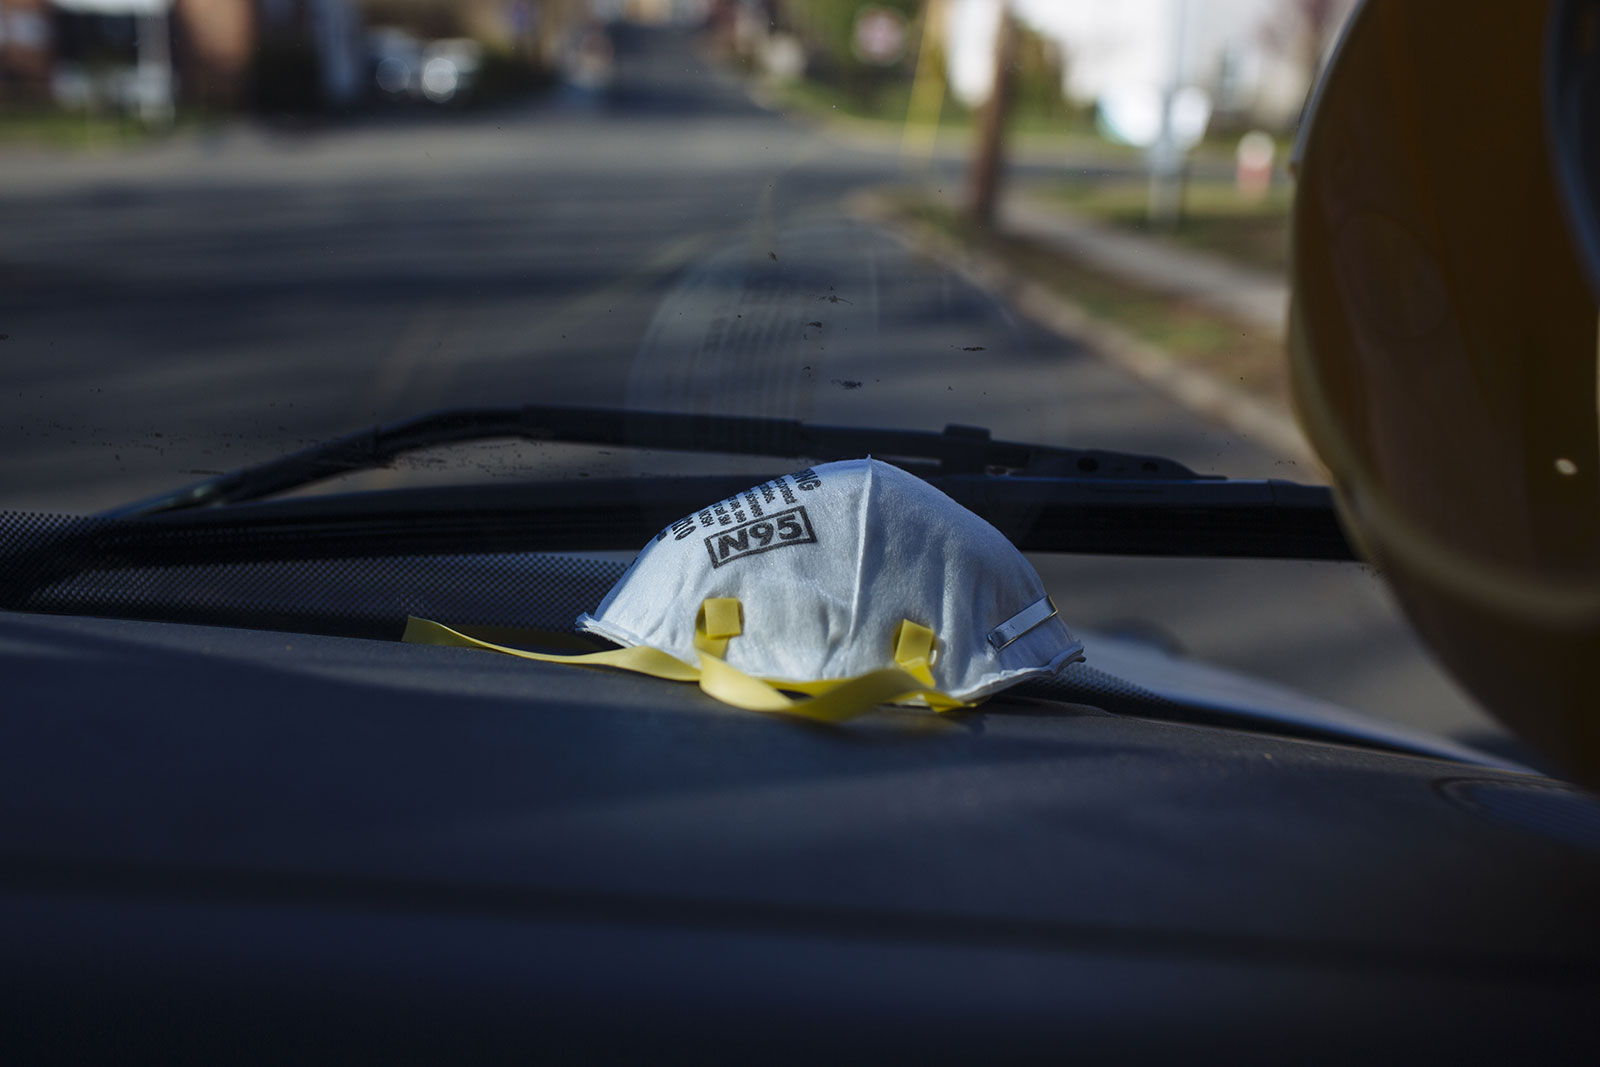 An N95 protective mask sits on the dashboard of an ambulance in Teaneck, New Jersey, on Saturday, April 11.